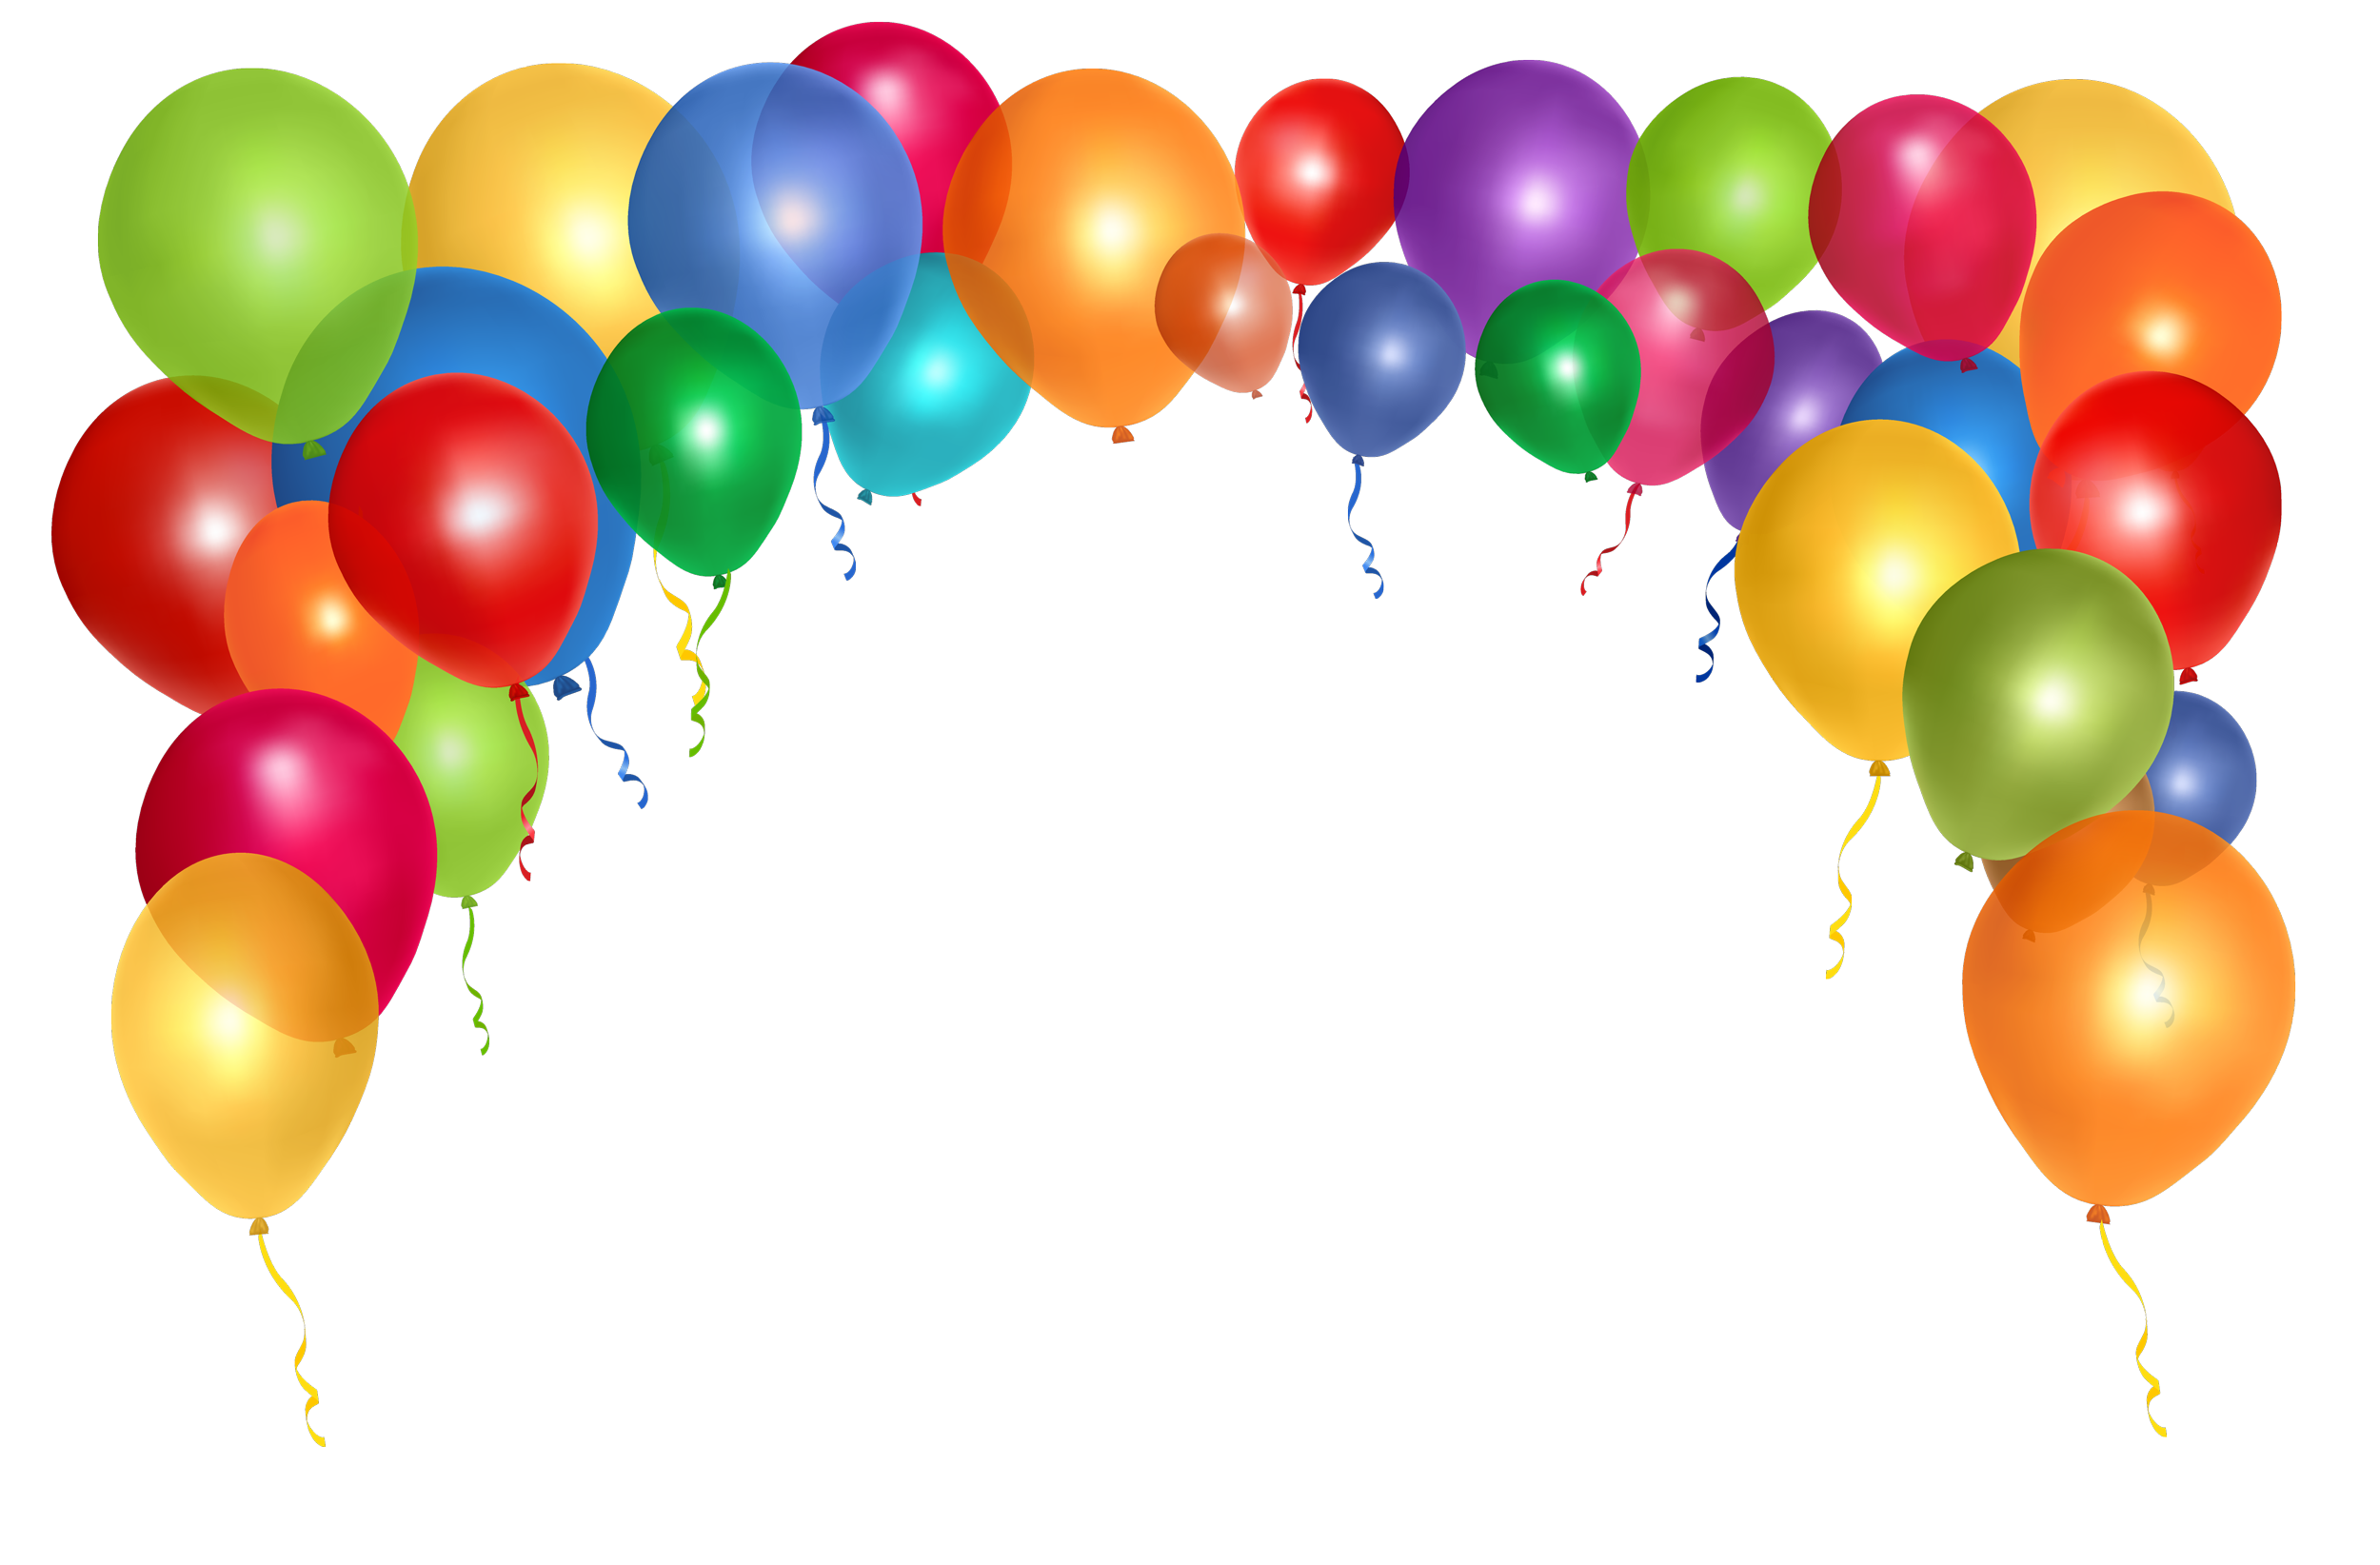 Balloons Png Free Download - Balloon, Transparent background PNG HD thumbnail